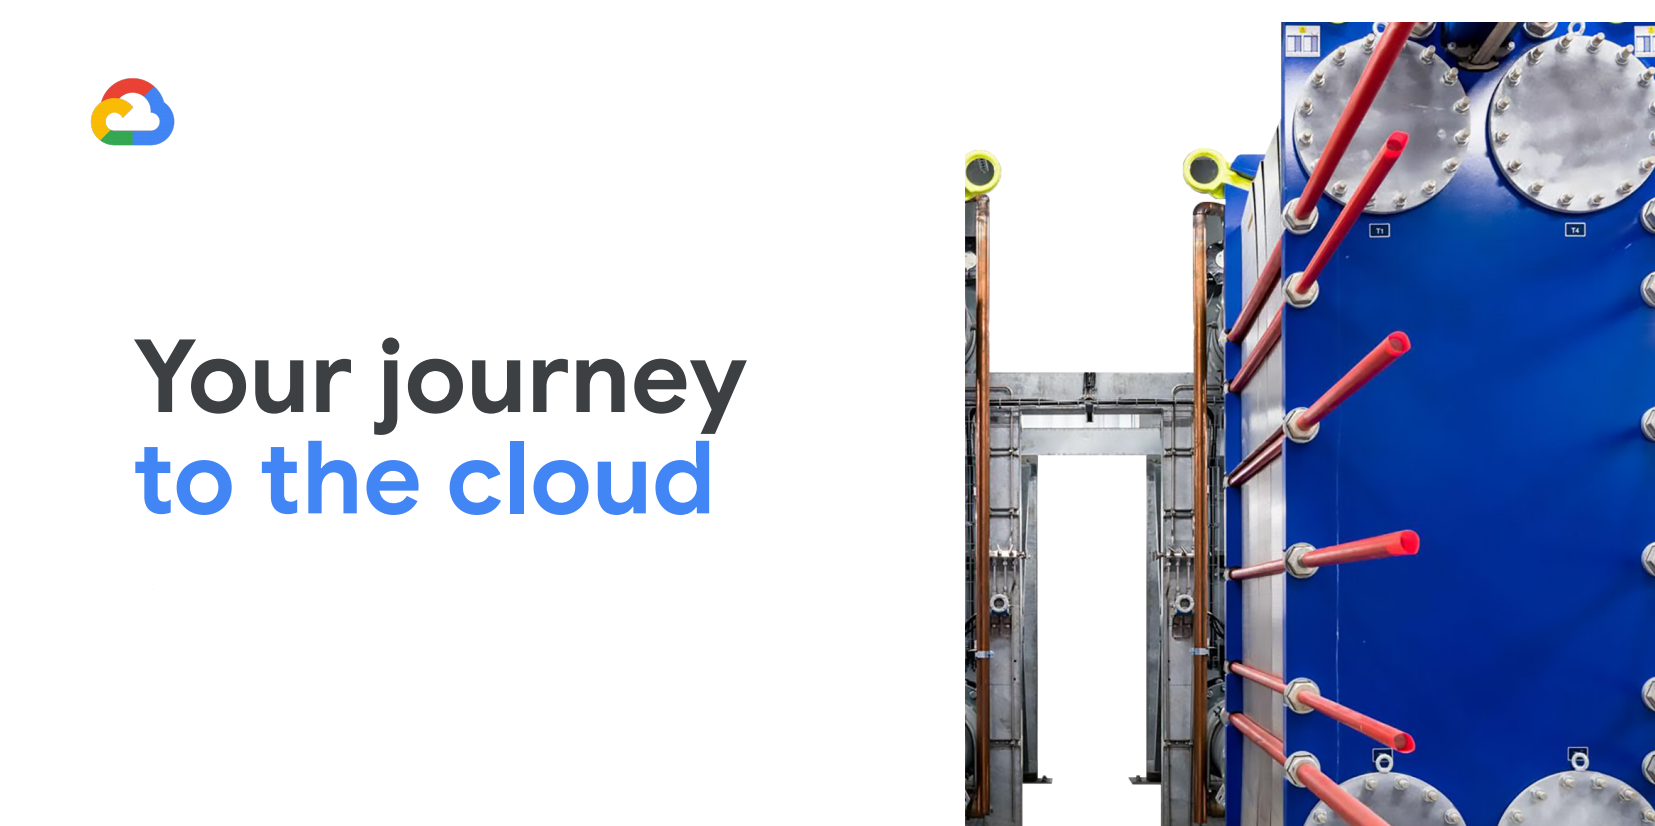 A smarter, faster path to the cloud